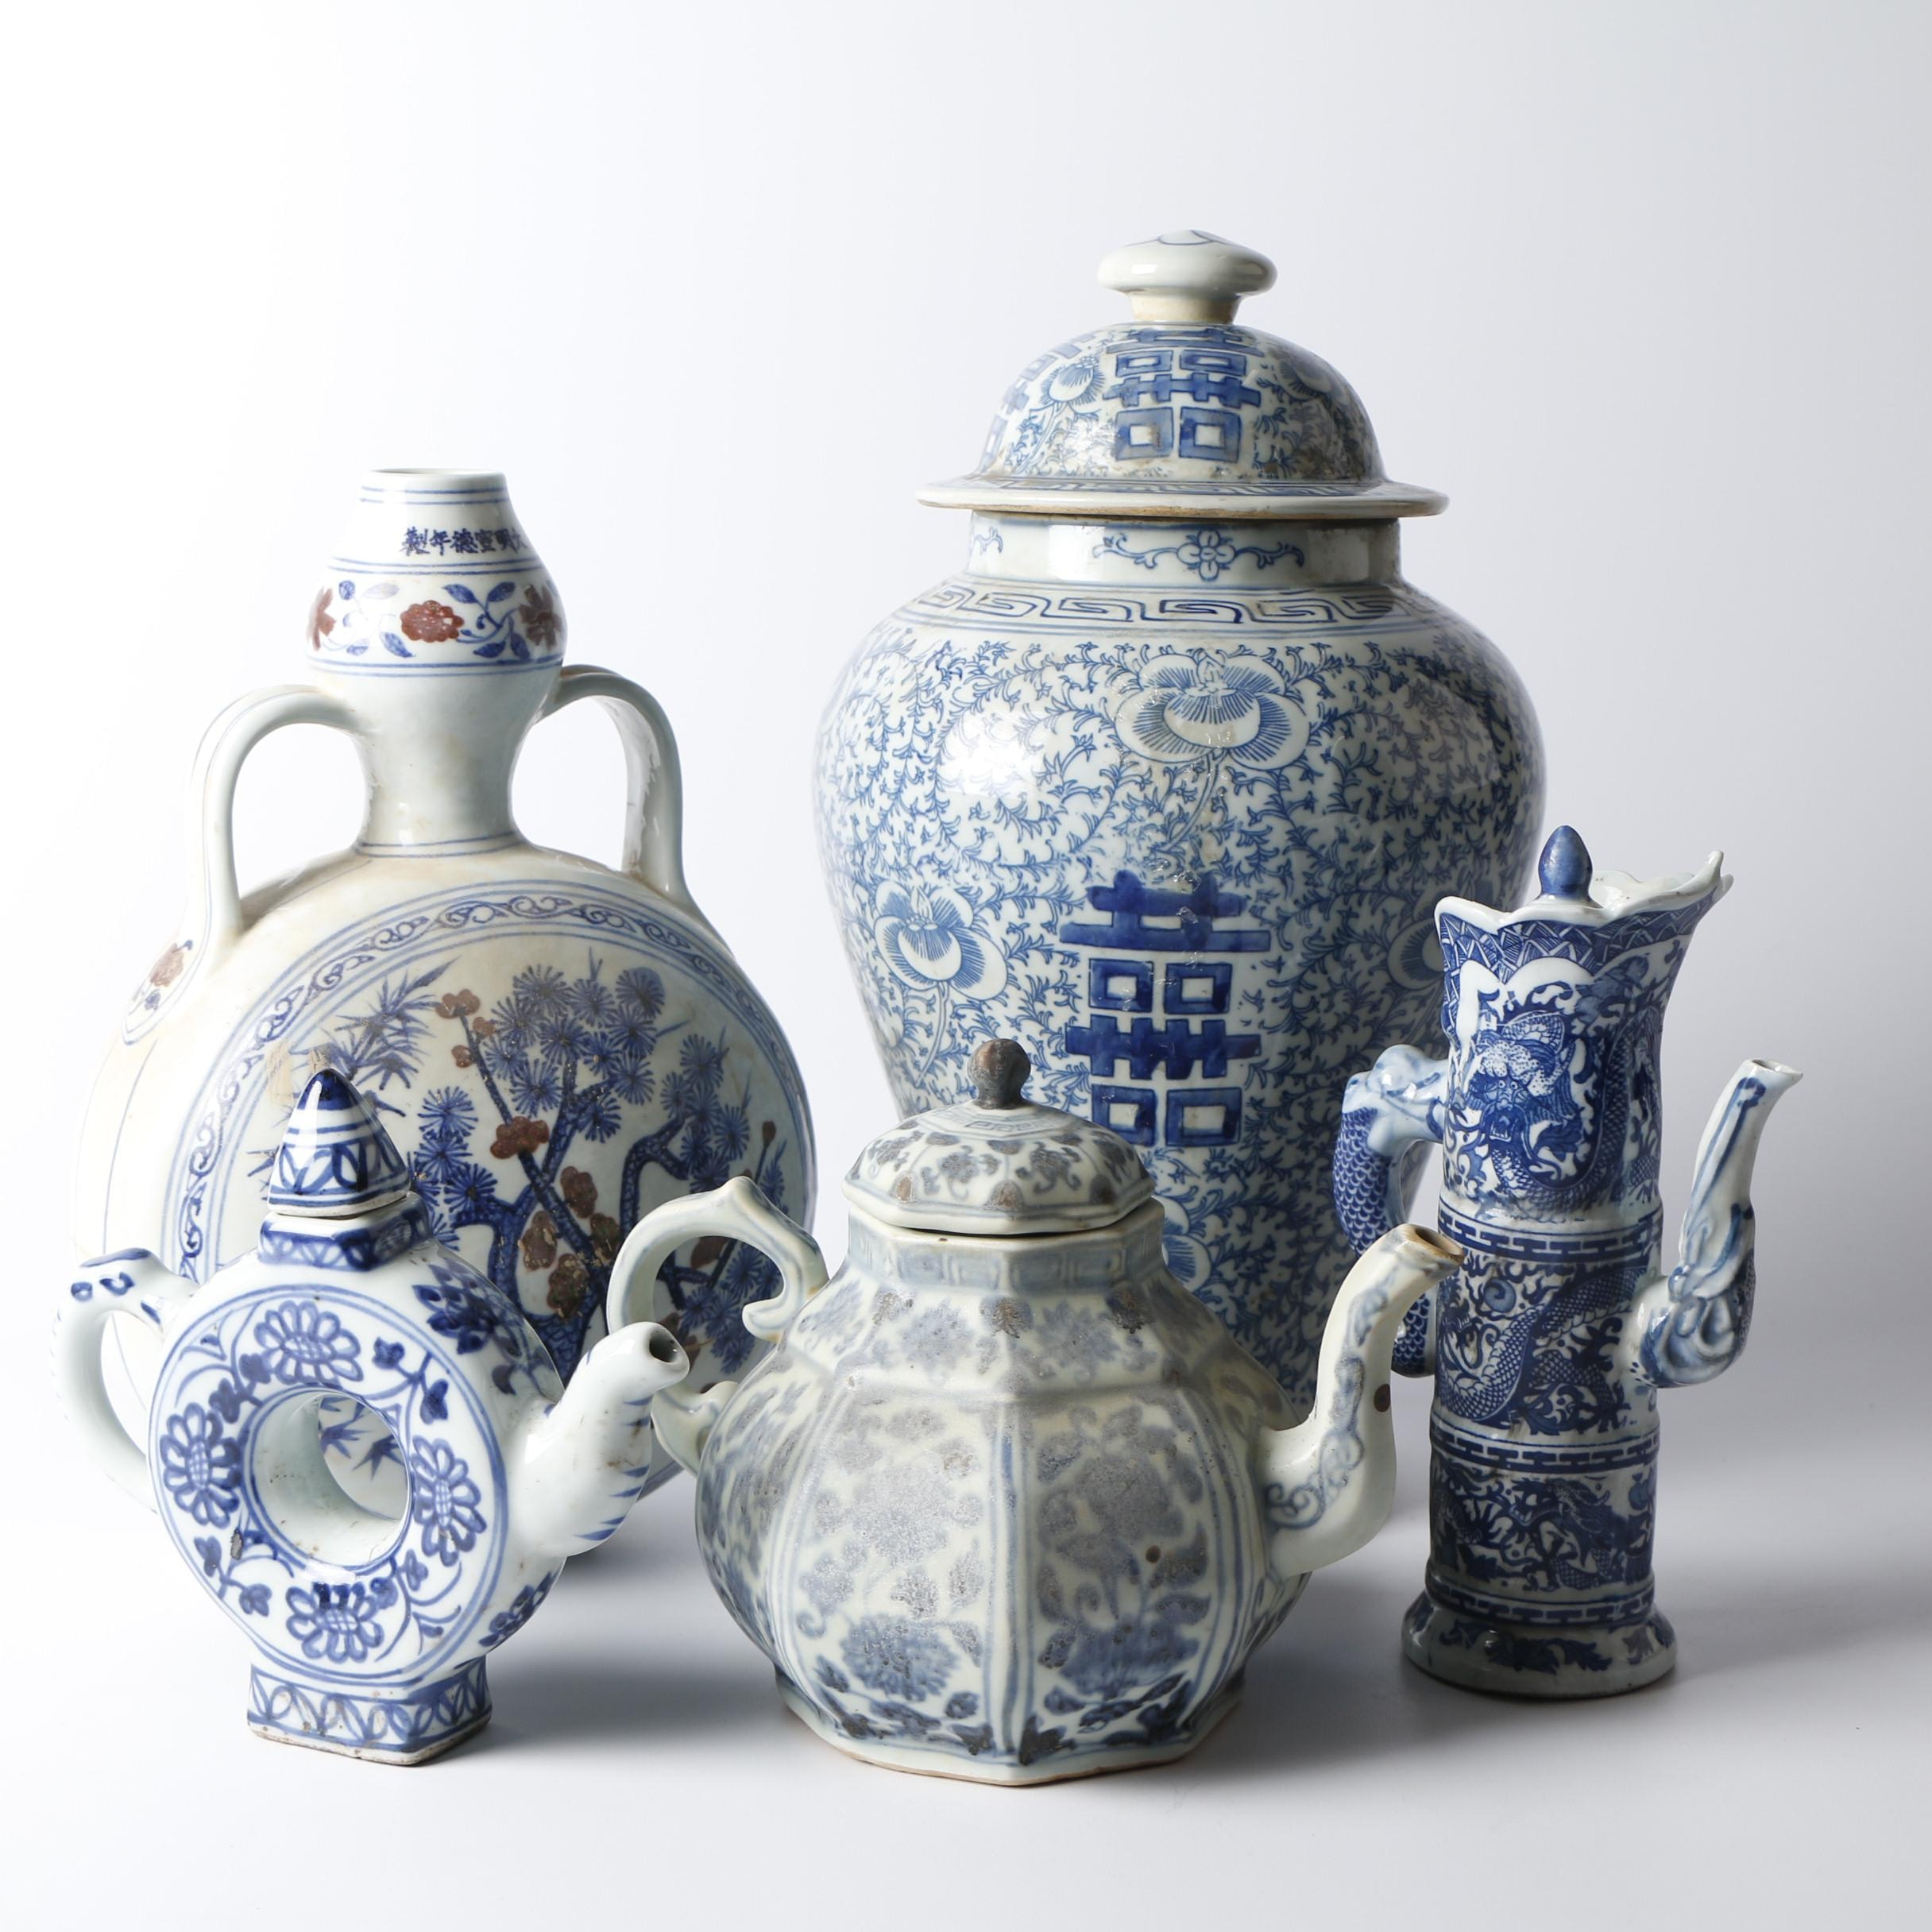 Chinese Hand-Painted Blue and White Porcelain Teapots, Vase, and Ginger Jar